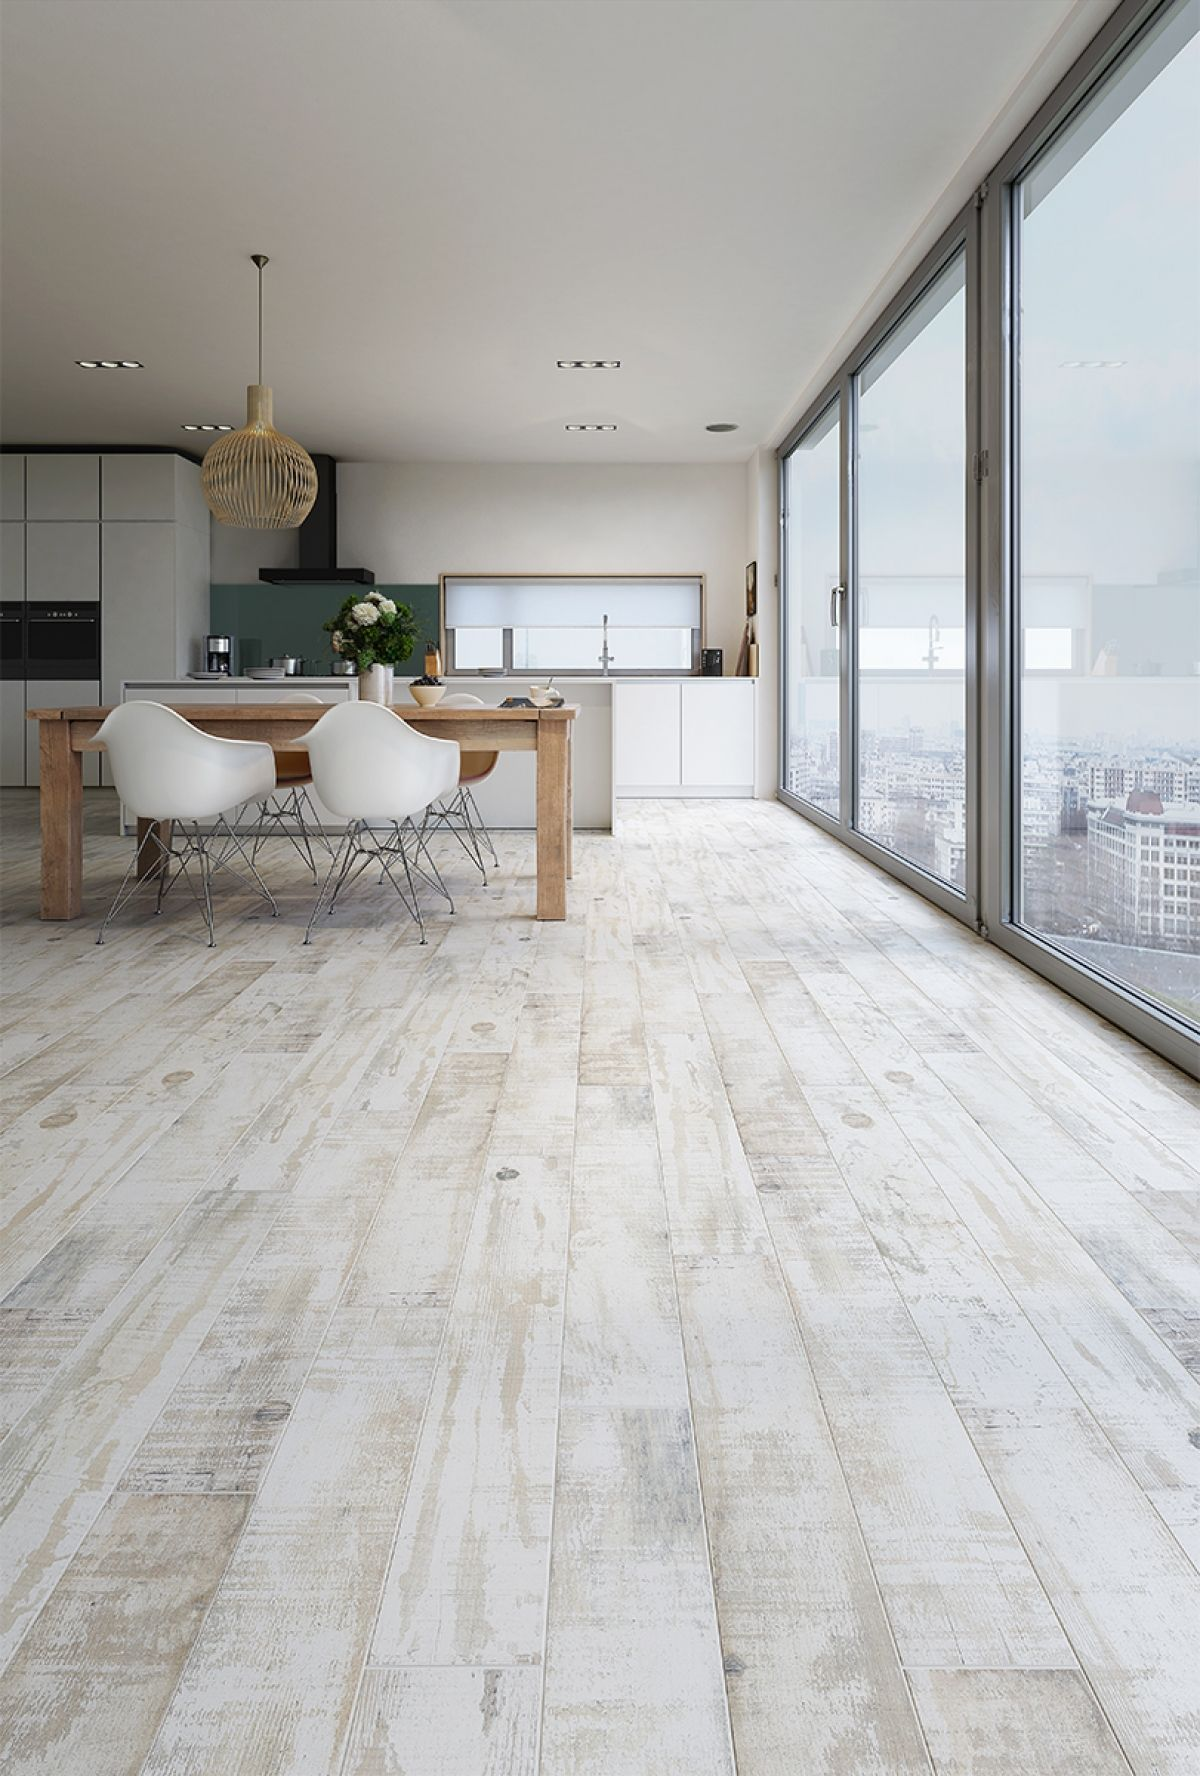 Wood Effect Porcelain Floor Tiles >> Roof Hikovi In 2019 Wood Effect Tiles Wood Effect Floor